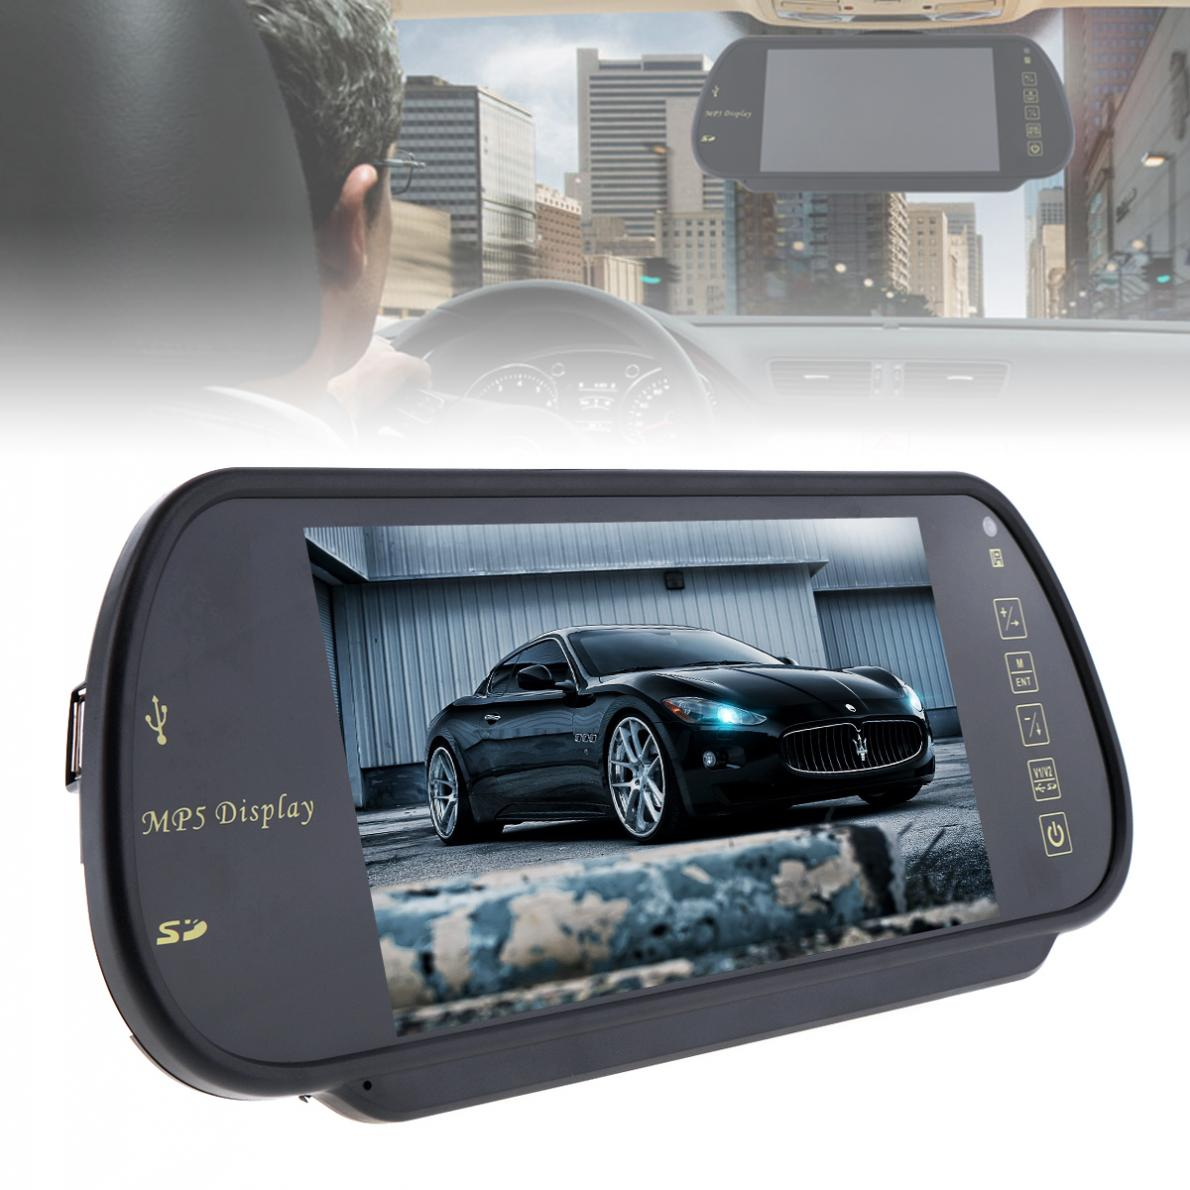 """7/"""" LCD TFT Color Screen Auto Car Reverse Parking Rear View Backup Mirror Monitor"""